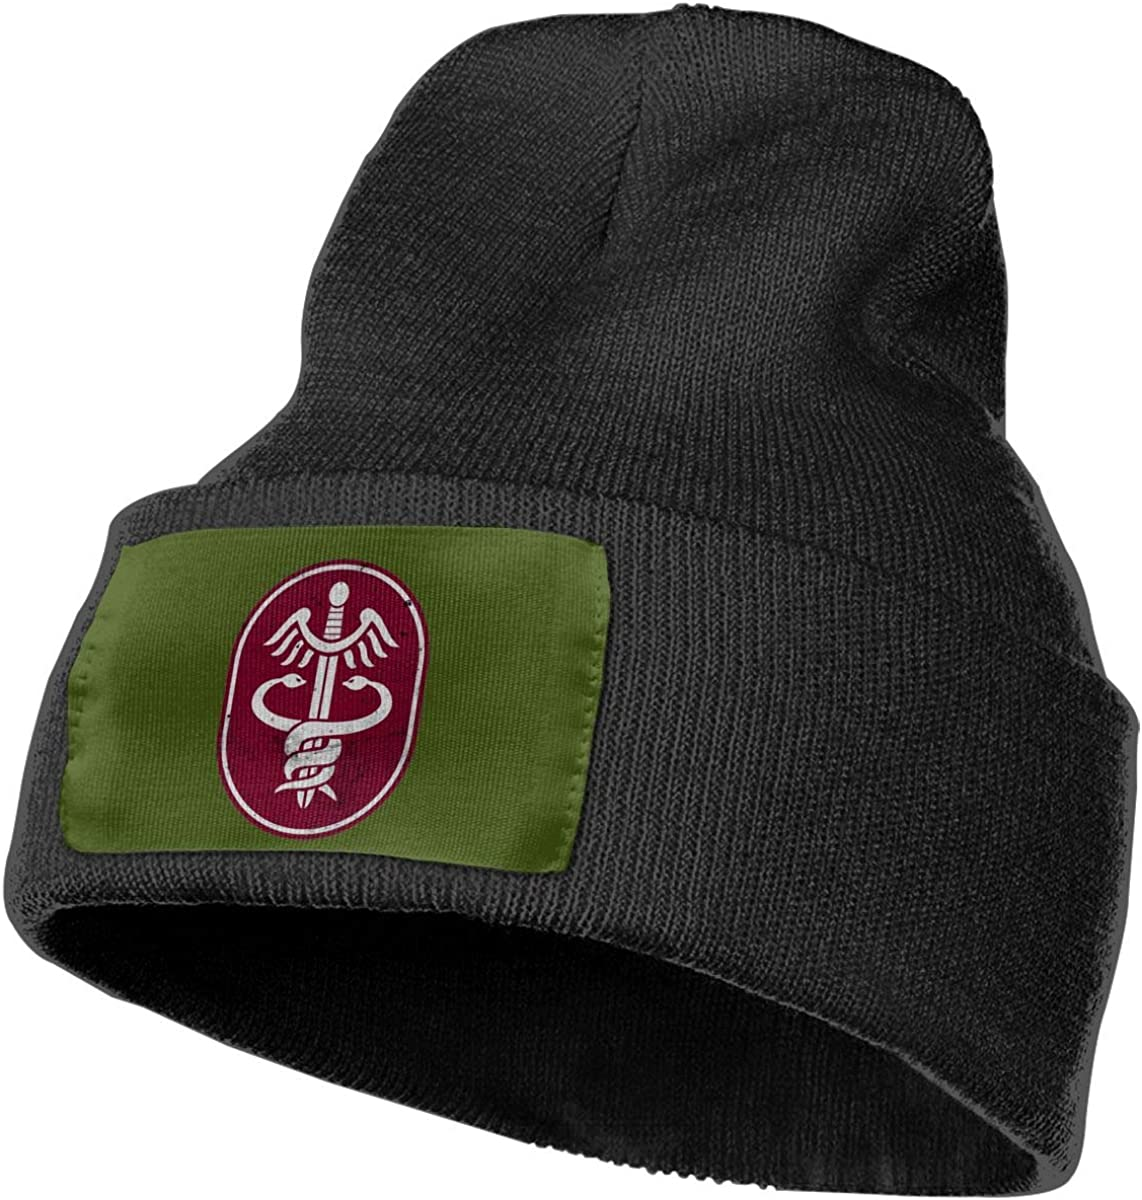 FORDSAN CP US Army Retro Medical Command Mens Beanie Cap Skull Cap Winter Warm Knitting Hats.